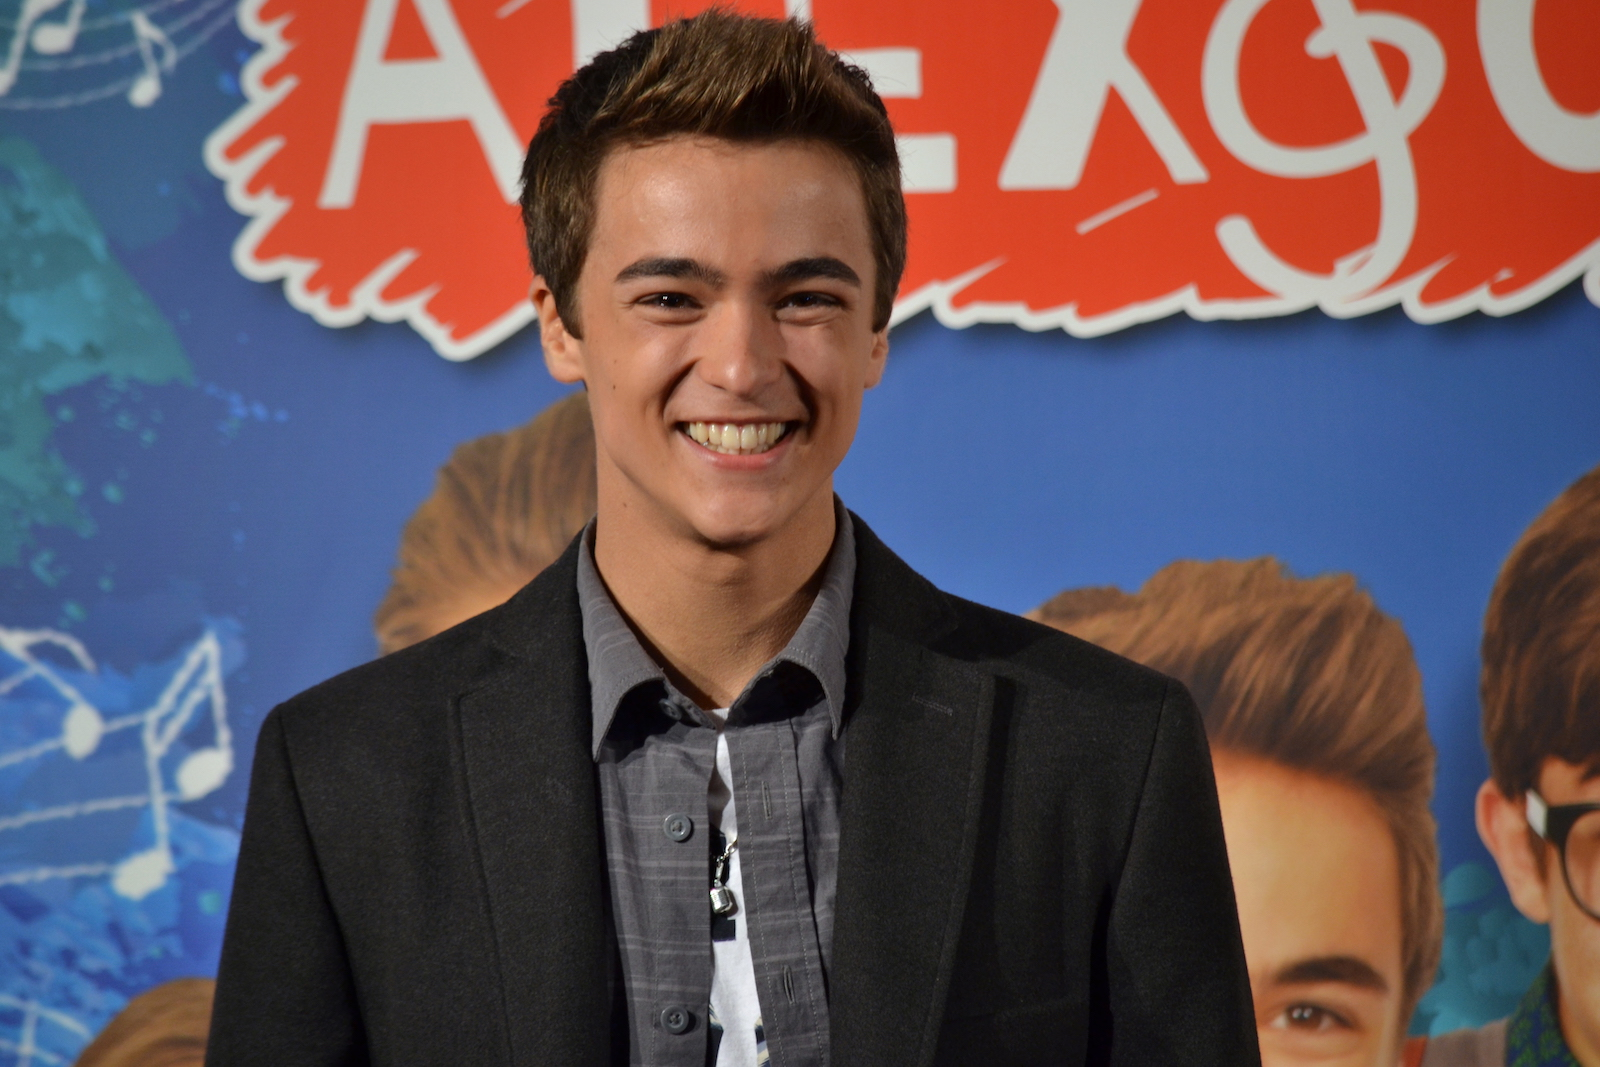 Roma Fiction Fest 2015: Leonardo Cecchi sul red carpet di Alex & Co